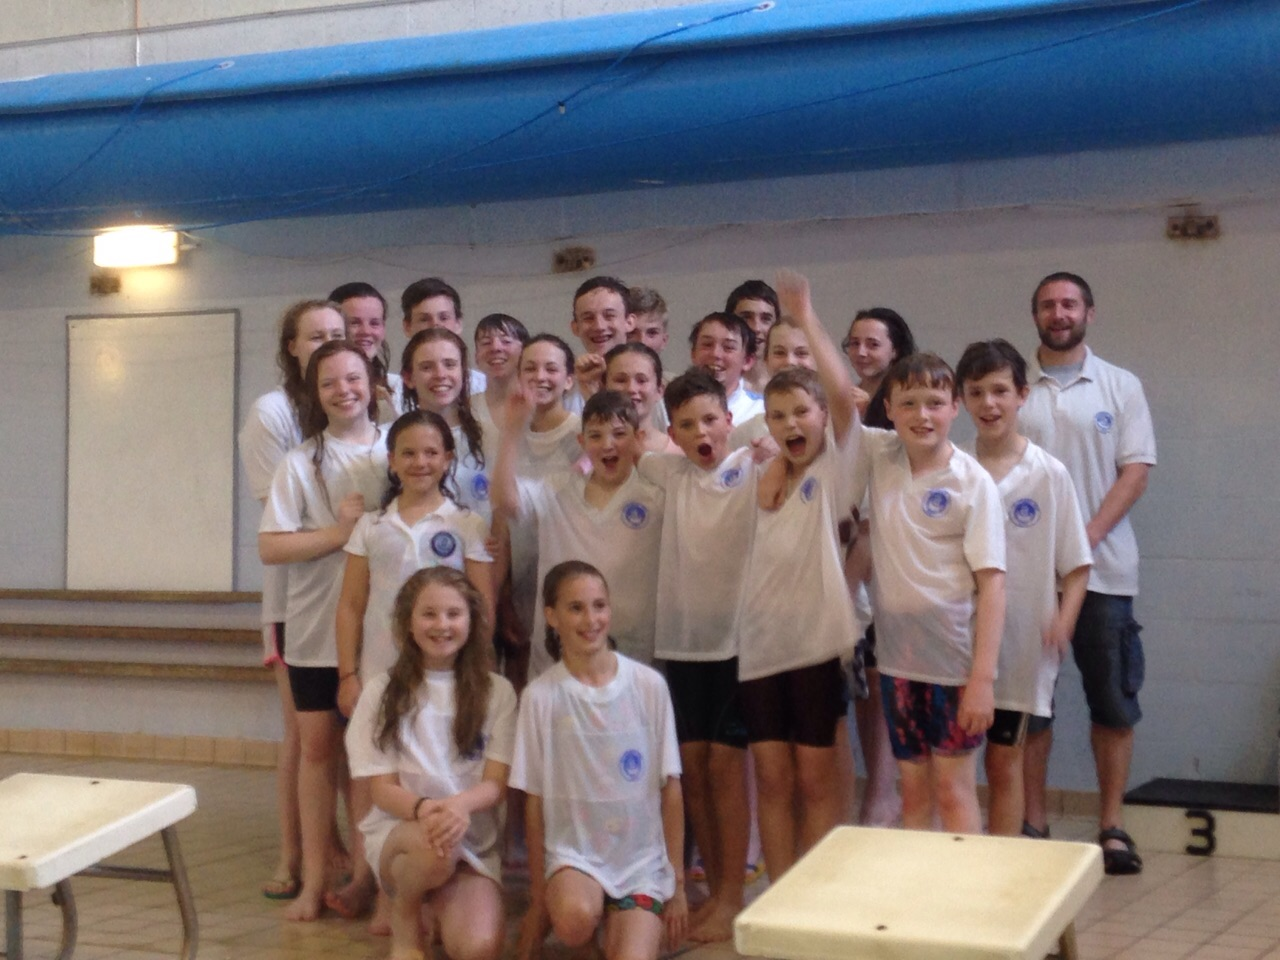 Amateur swimming clubs